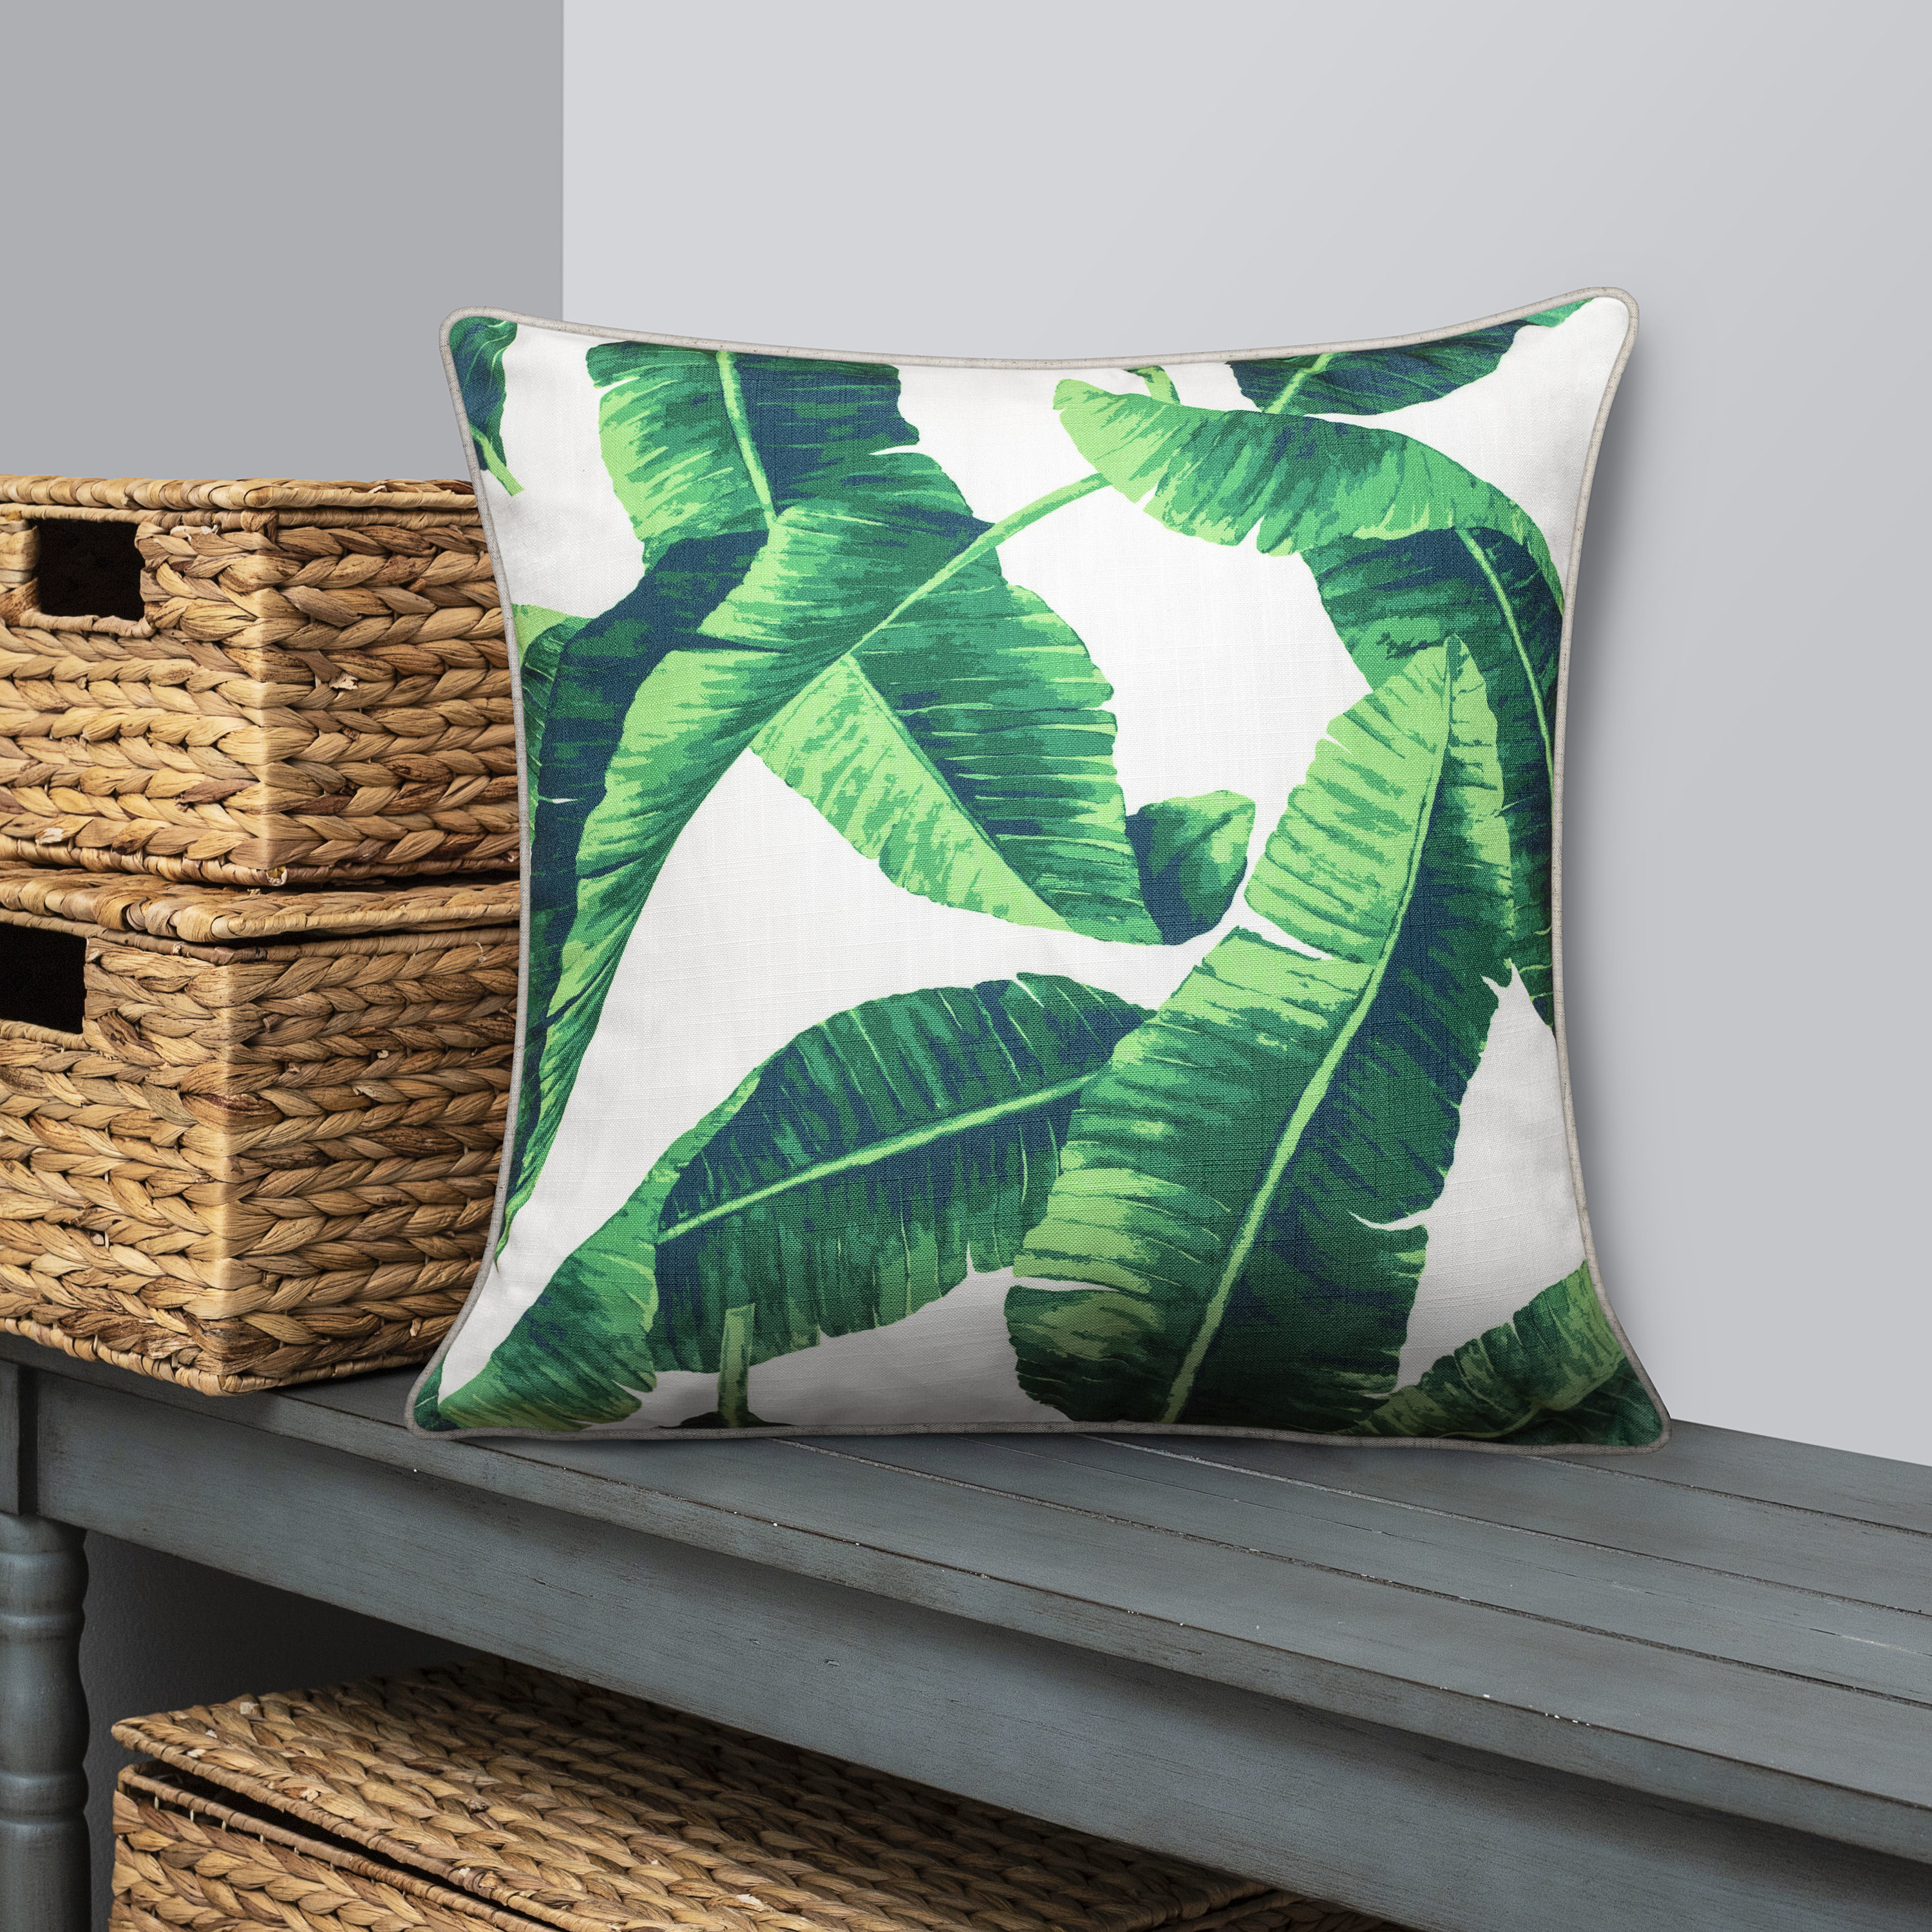 The green and white pillow on a bench